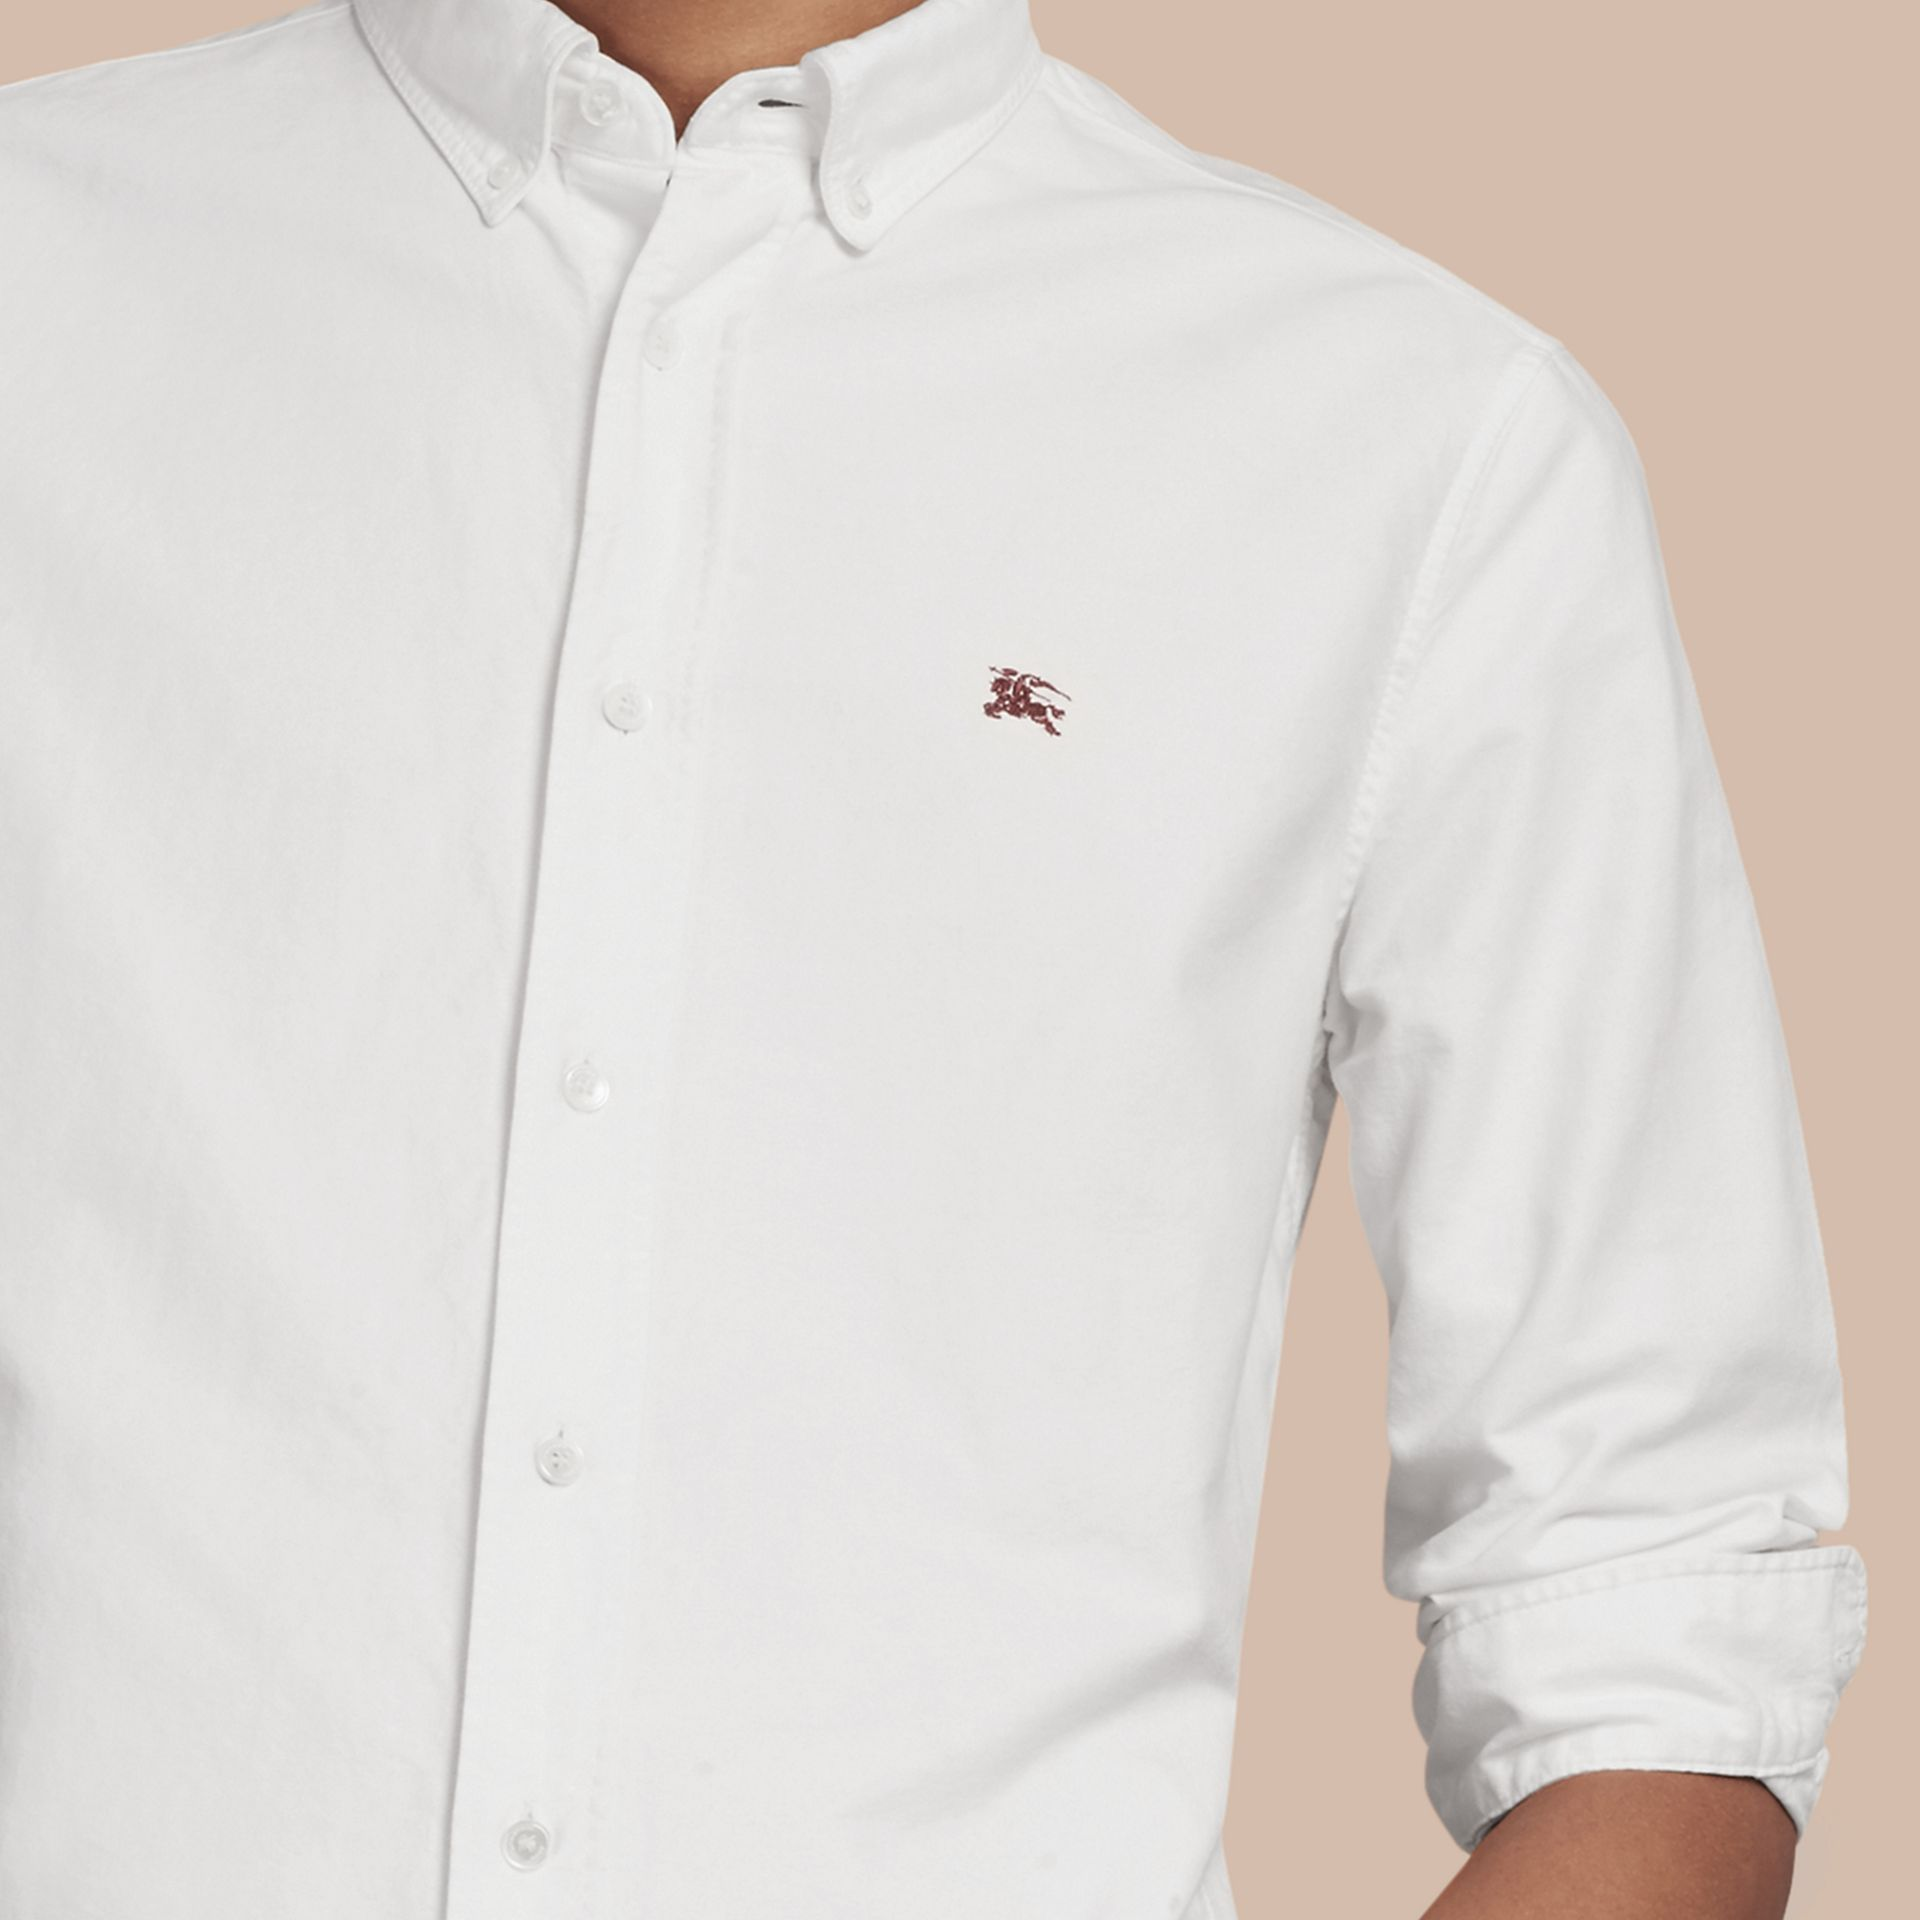 Cotton Oxford Shirt in White - Men | Burberry Singapore - gallery image 2